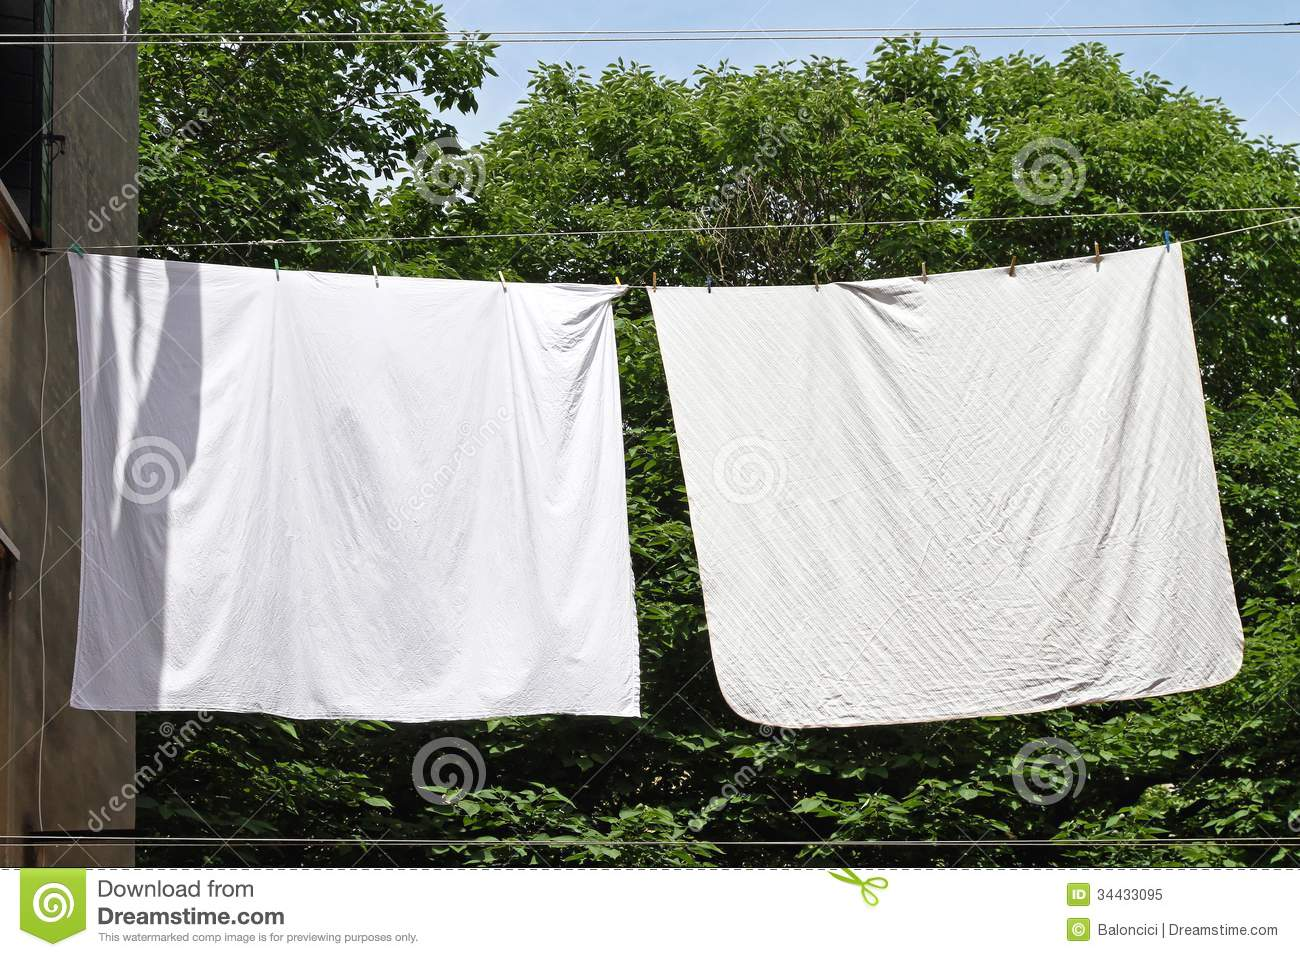 Bettwaesche Clipart Clothes Line Stock Image Image Of Outside Washing Twine